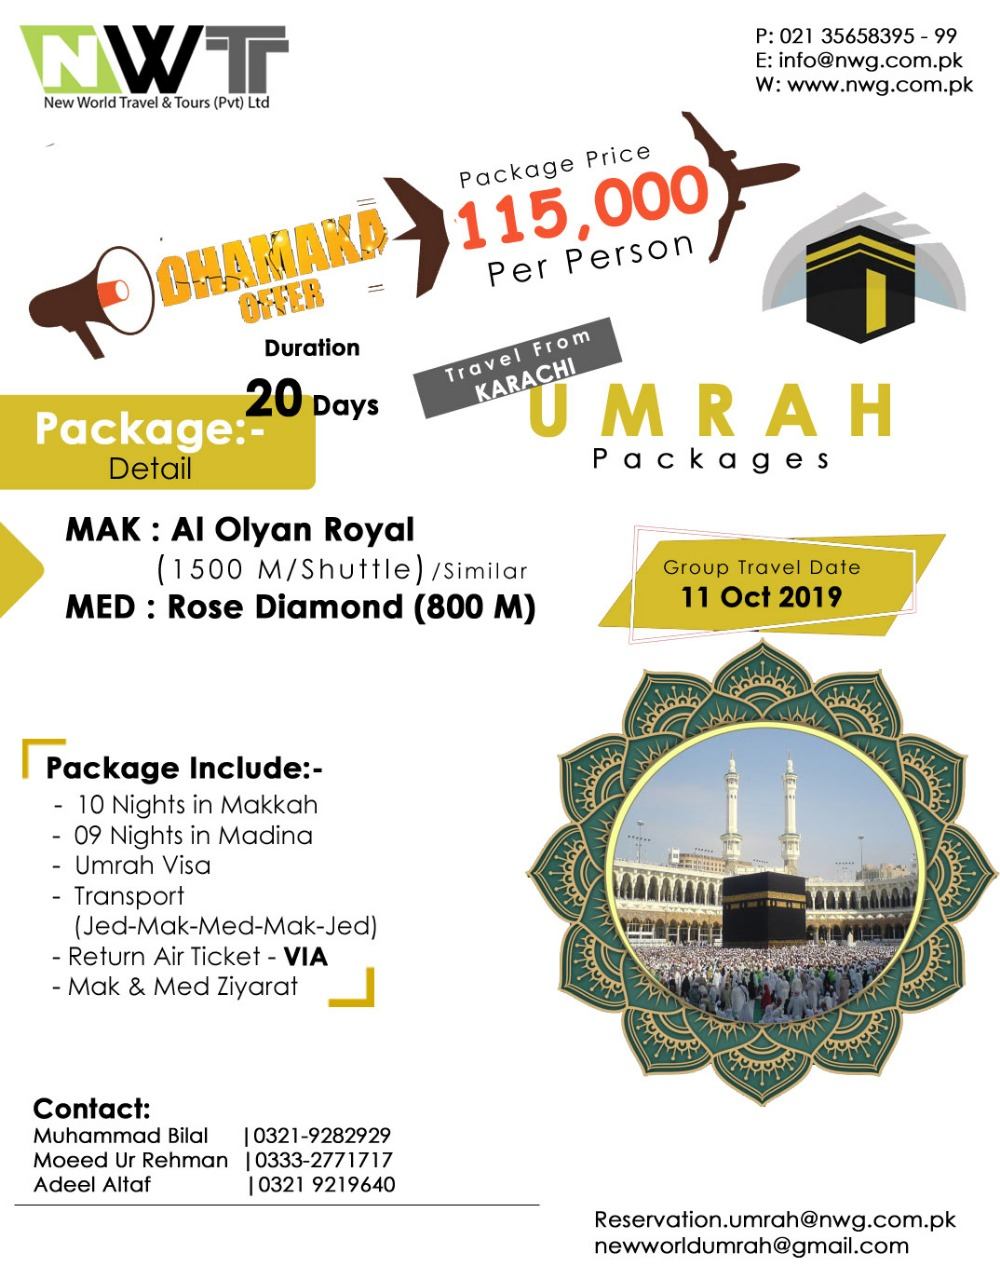 Umrah Packages 20 Days (via flight)